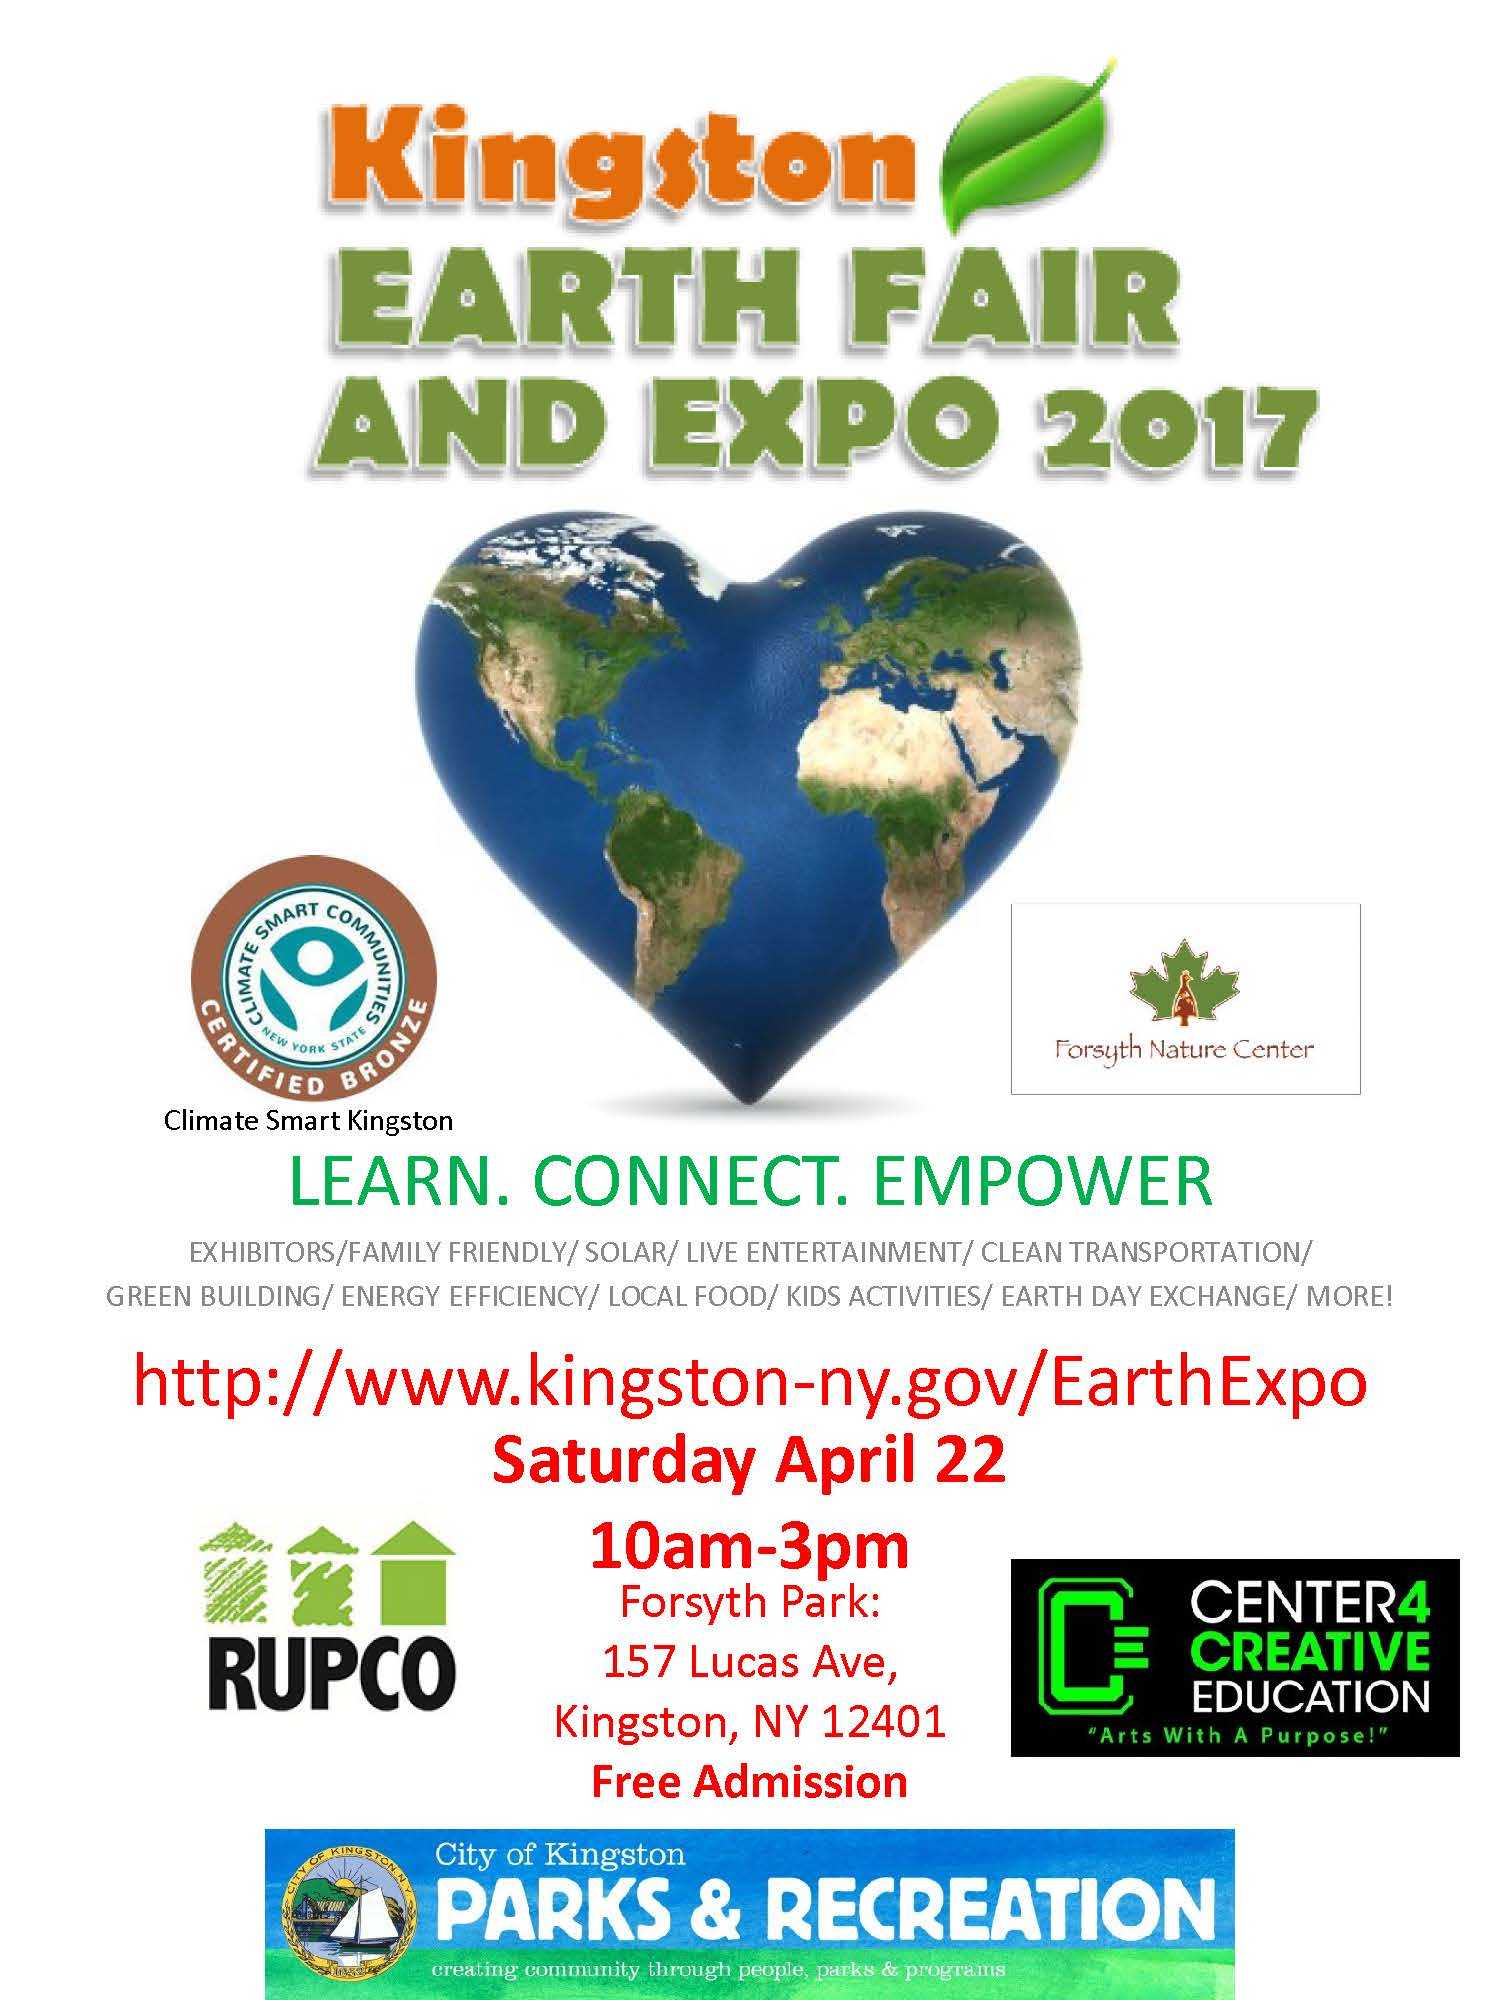 Kingston Earth Fair and Expo